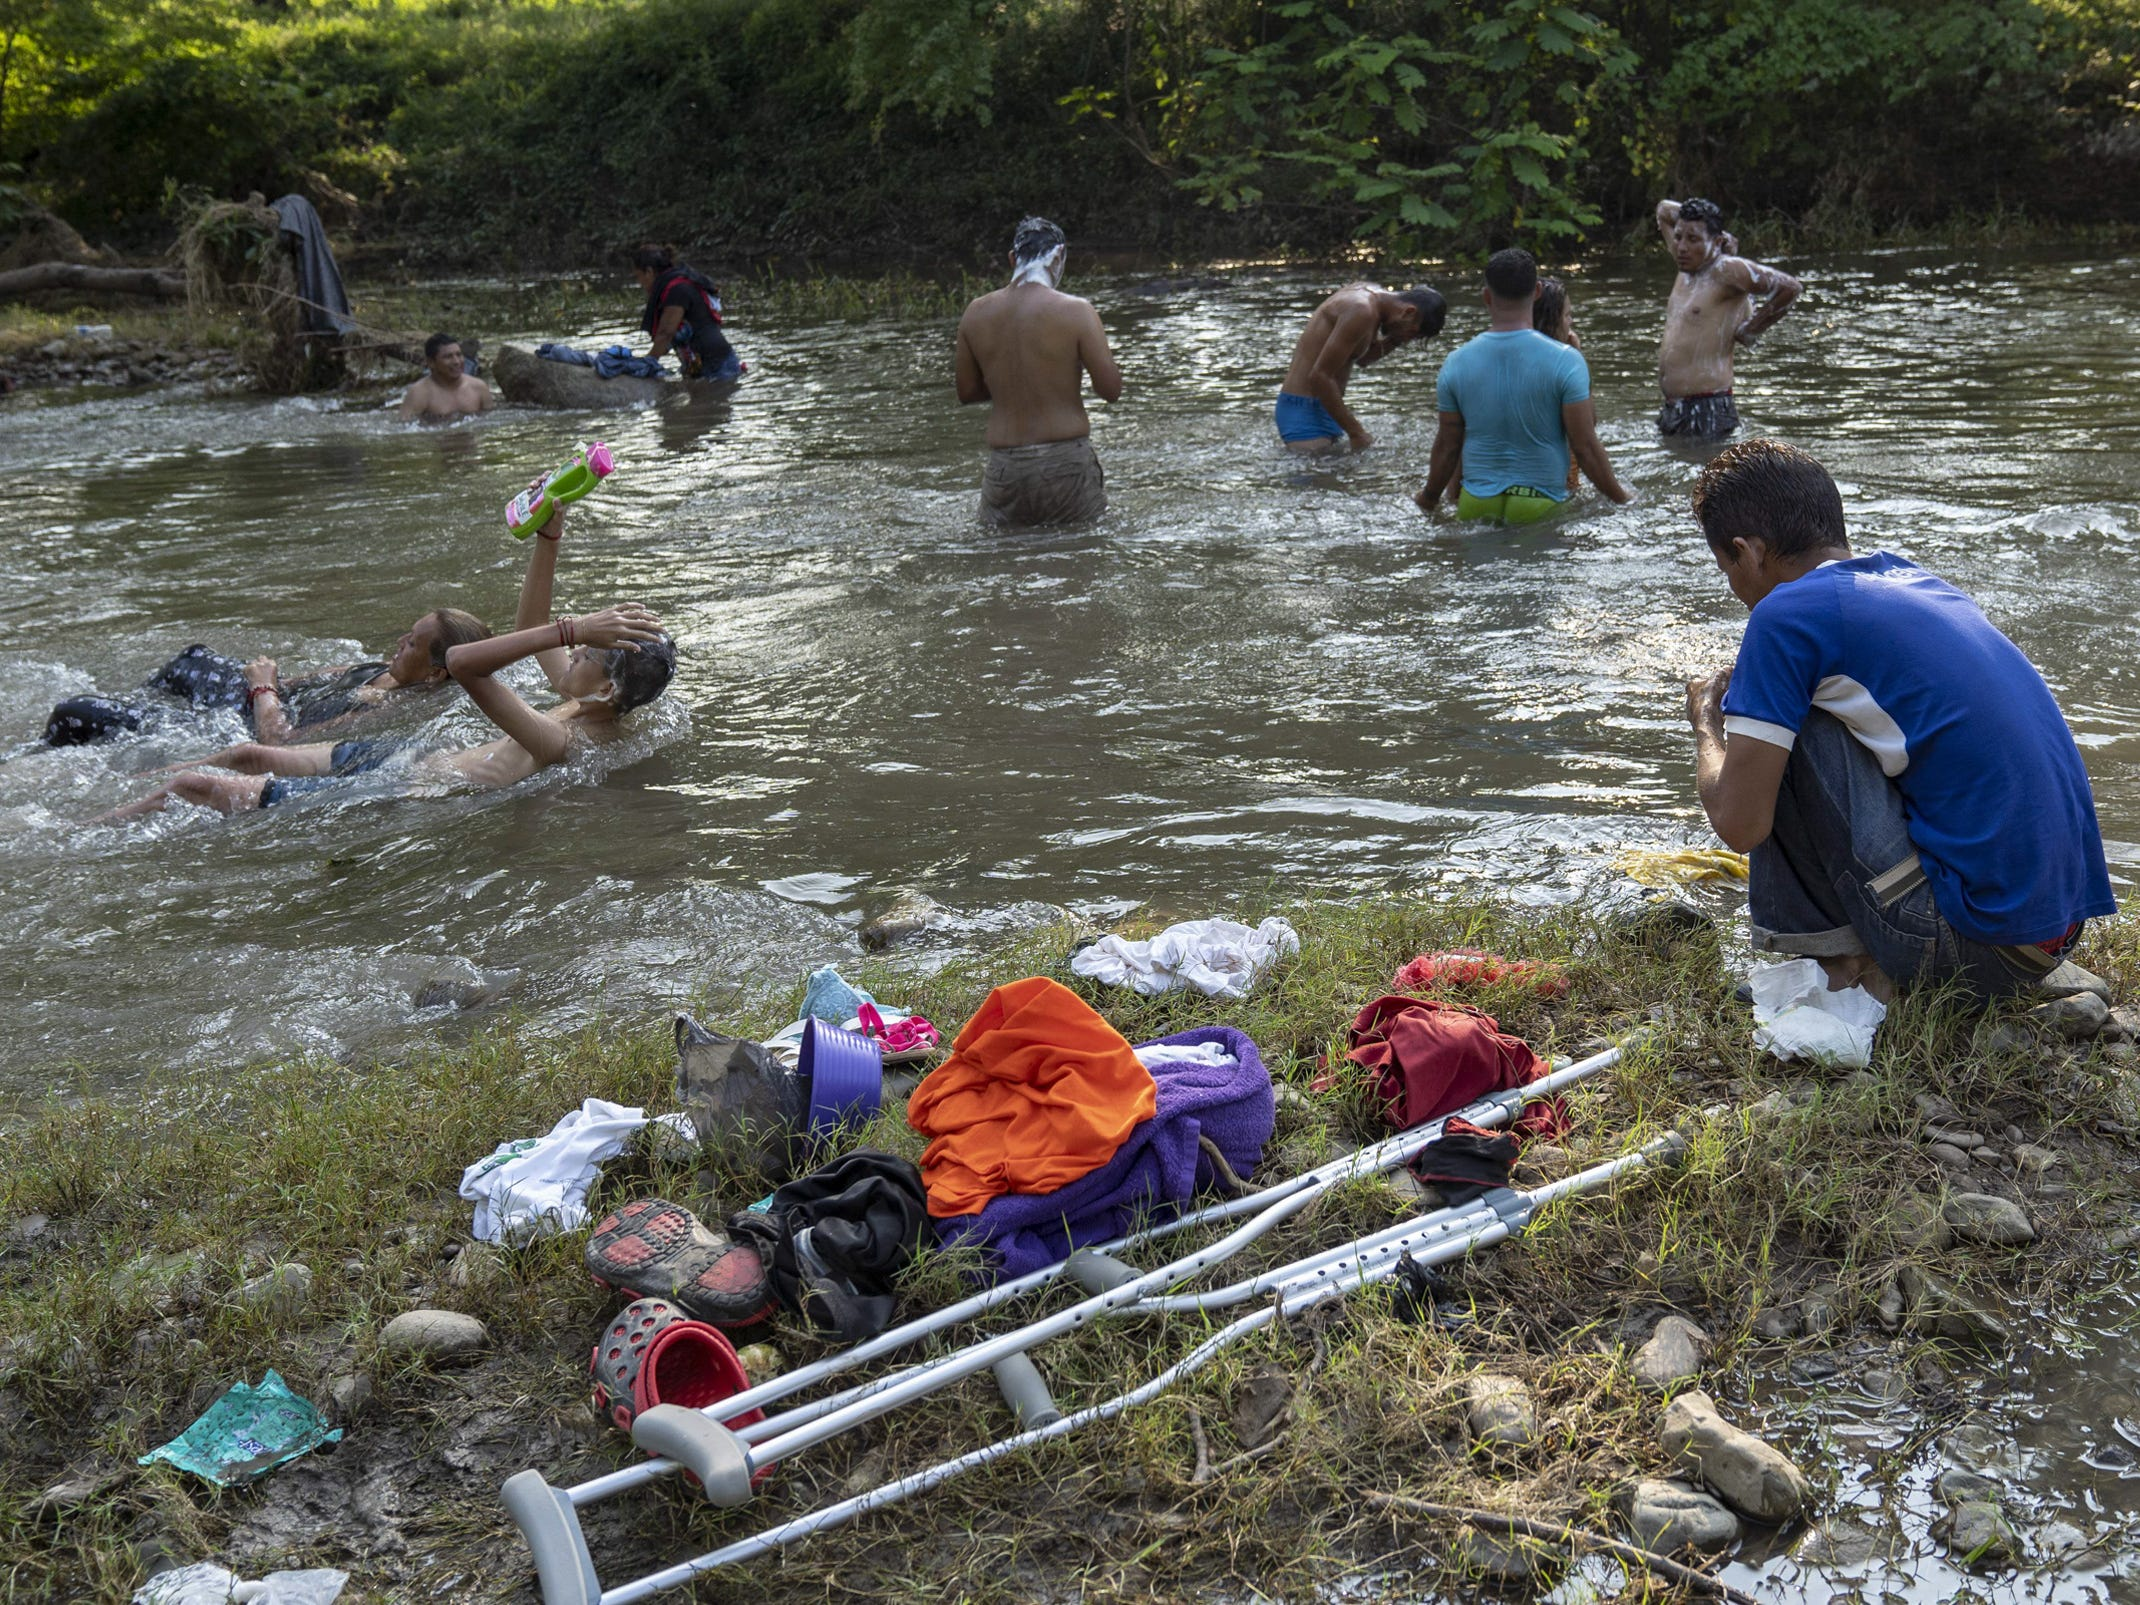 Bathing in the river offers a little relief from a day of walking in the oppressive heat for some of the thousands of migrants in the caravan on Oct. 27.